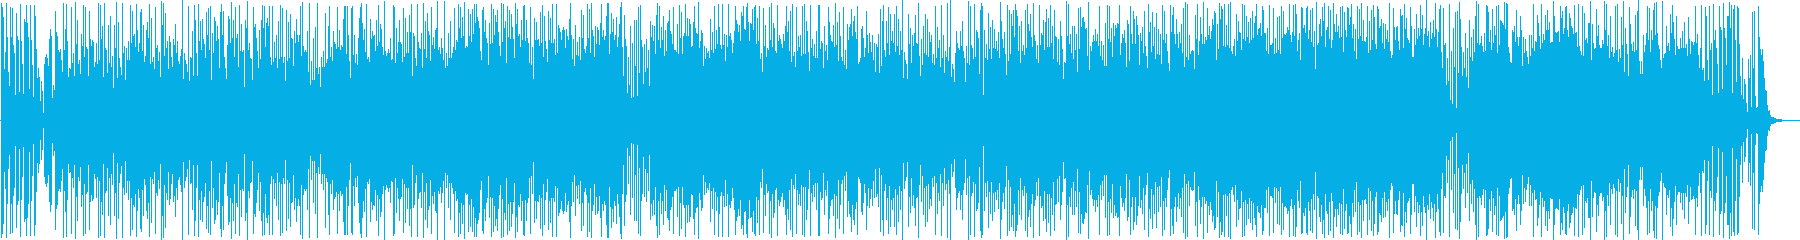 A bosovous and fun Bossa Nova song's reproduced waveform